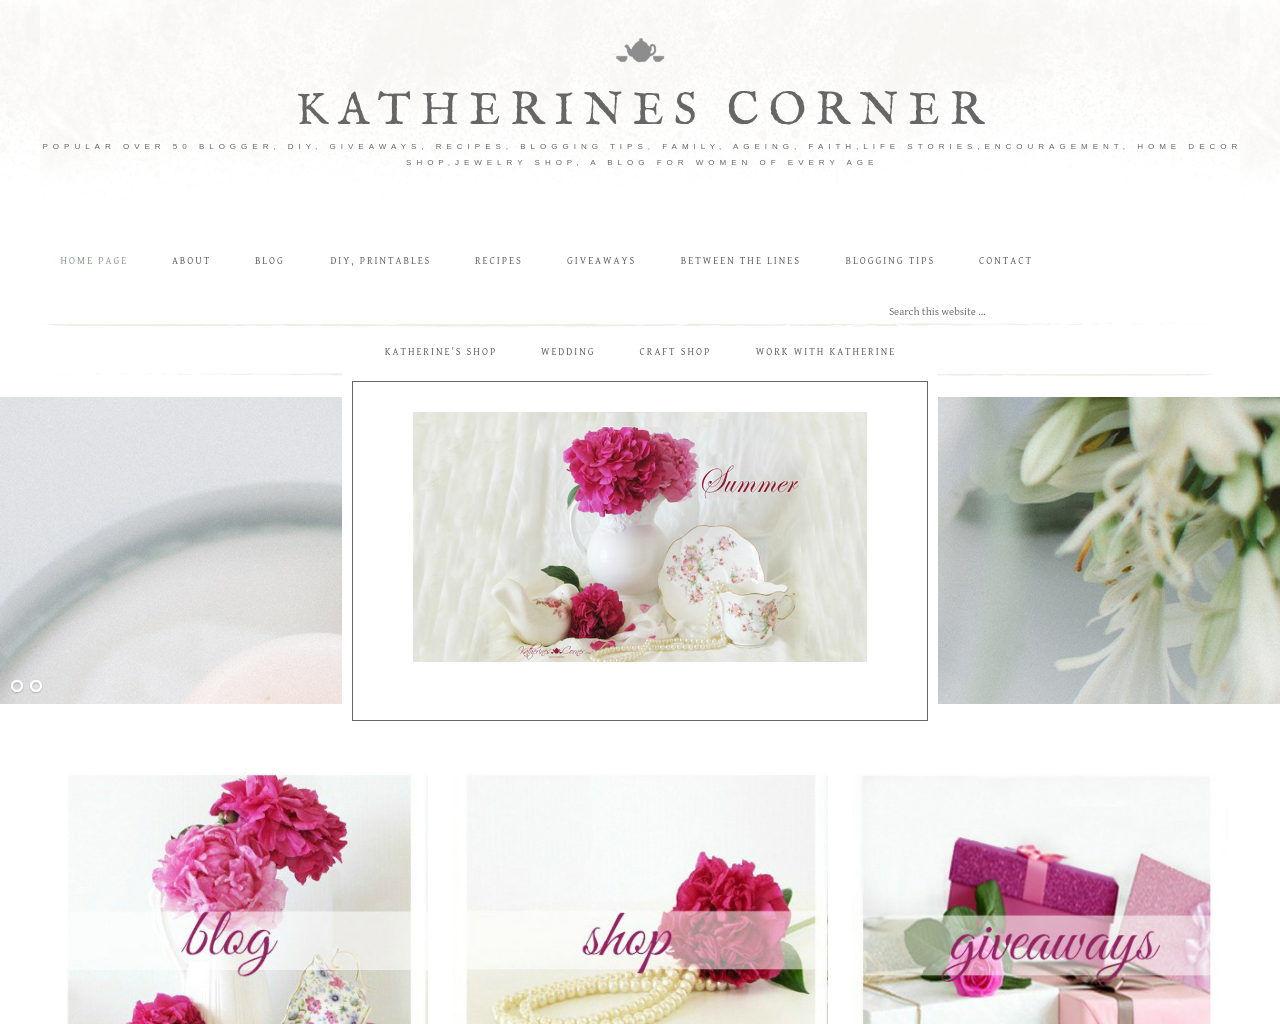 Katherines-Corner-Advertising-Reviews-Pricing